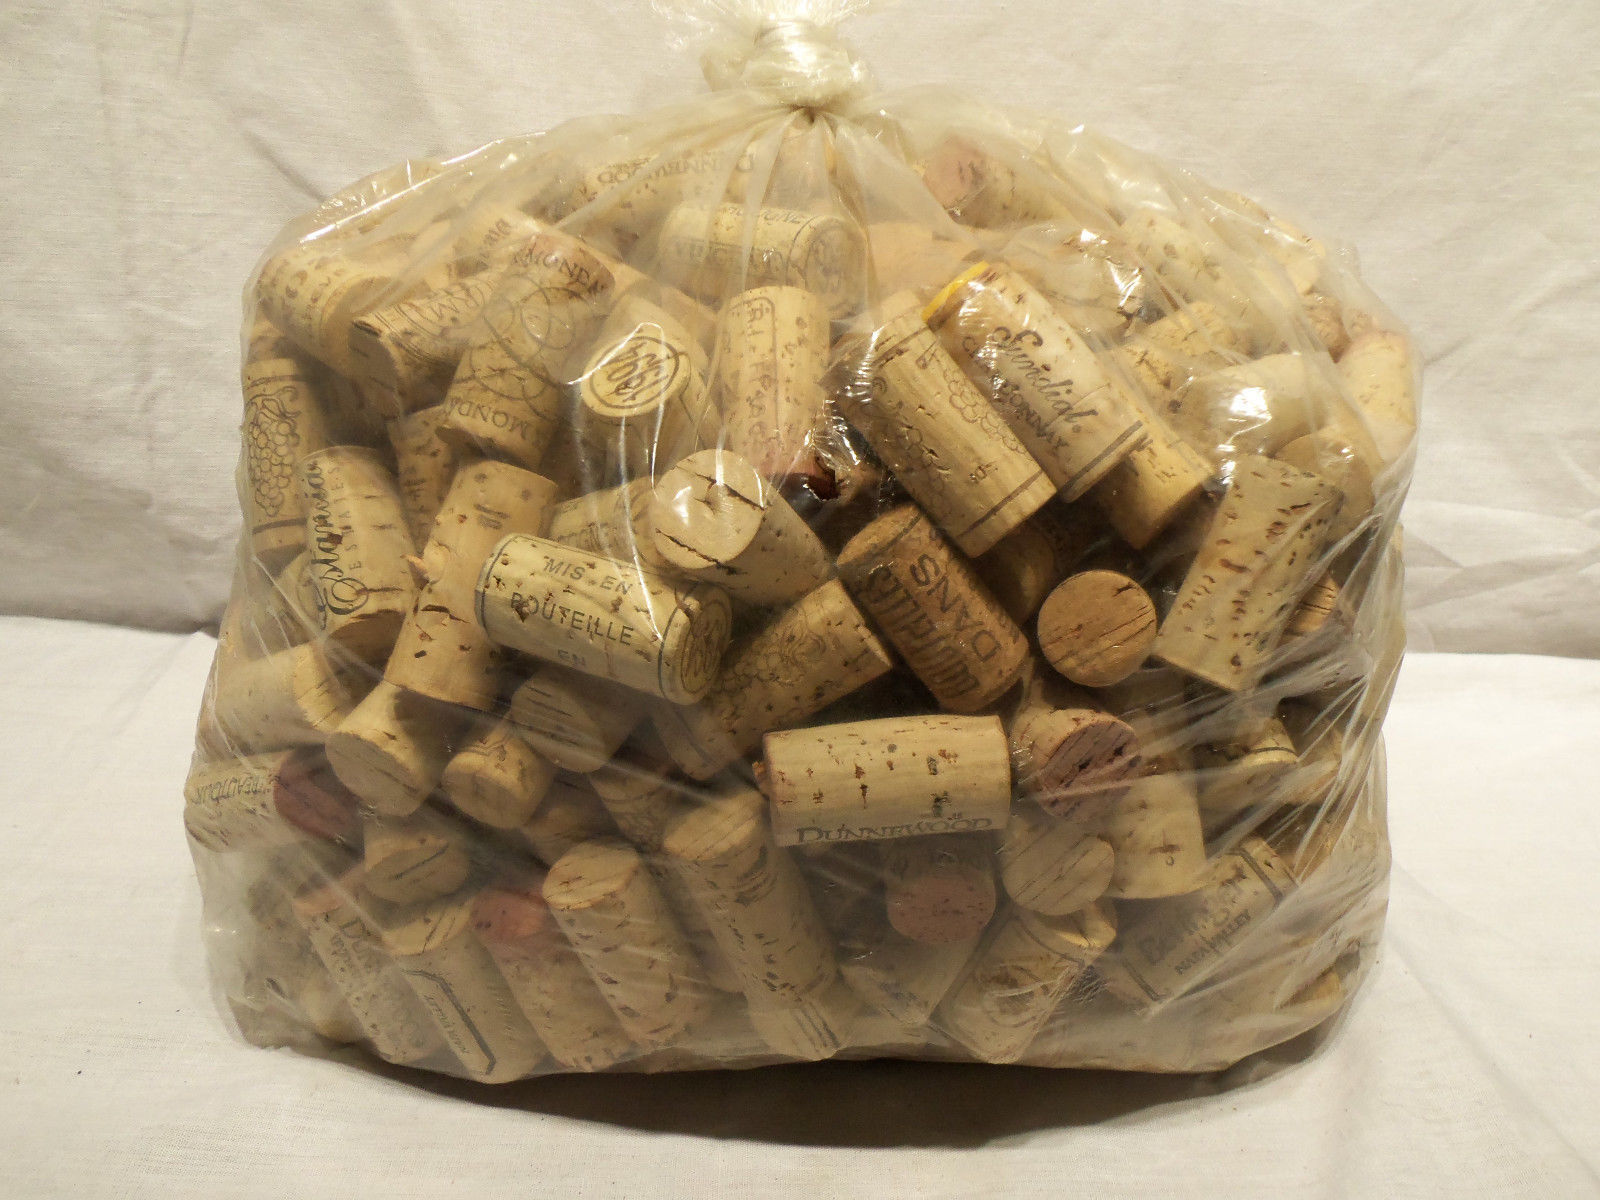 Primary image for 4lbs Hand Sorted Printed Recycled Natural Wine Corks For Crafts FREE SHIPPING